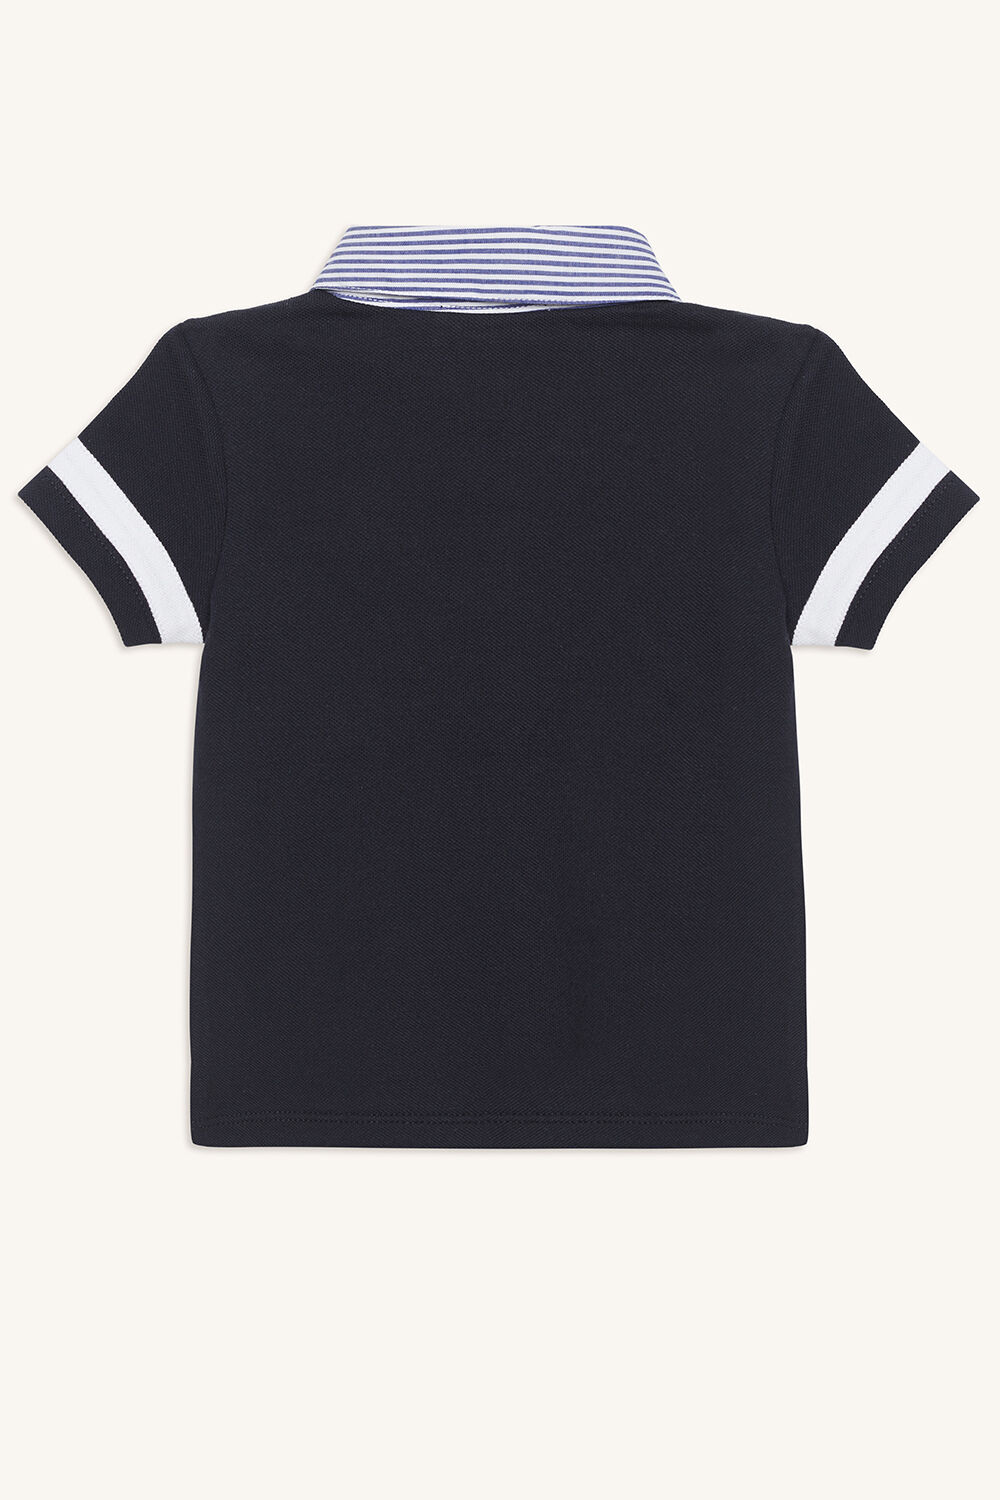 VARSITY POLO TEE in colour DRESS BLUES